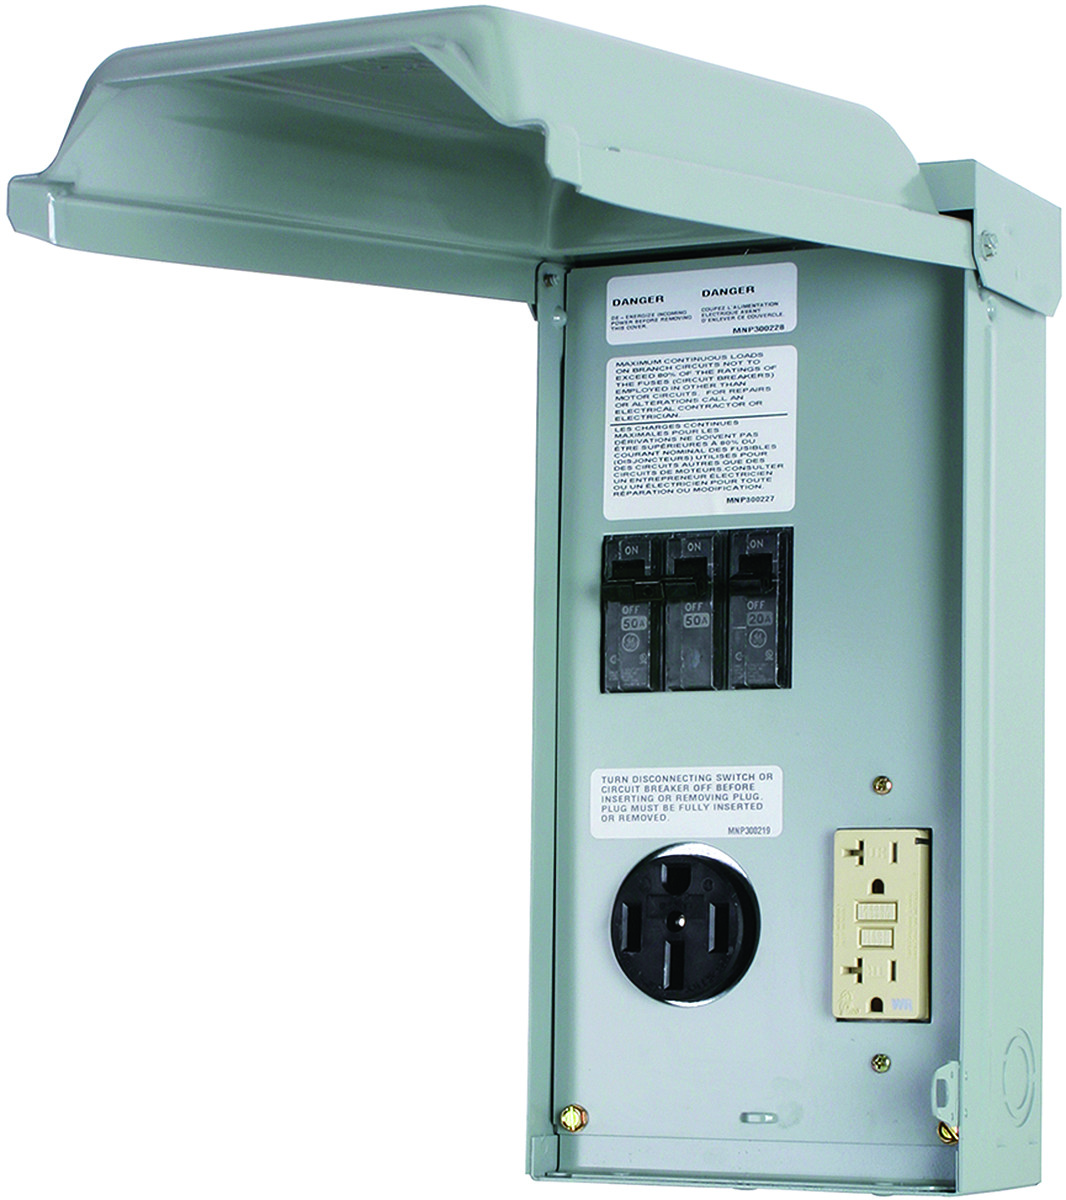 Ge Electrical Ge1lu502ss Power Panel Rv 70a 50 20a Gfci General Switch Breaker Box Fuses Tap To Expand